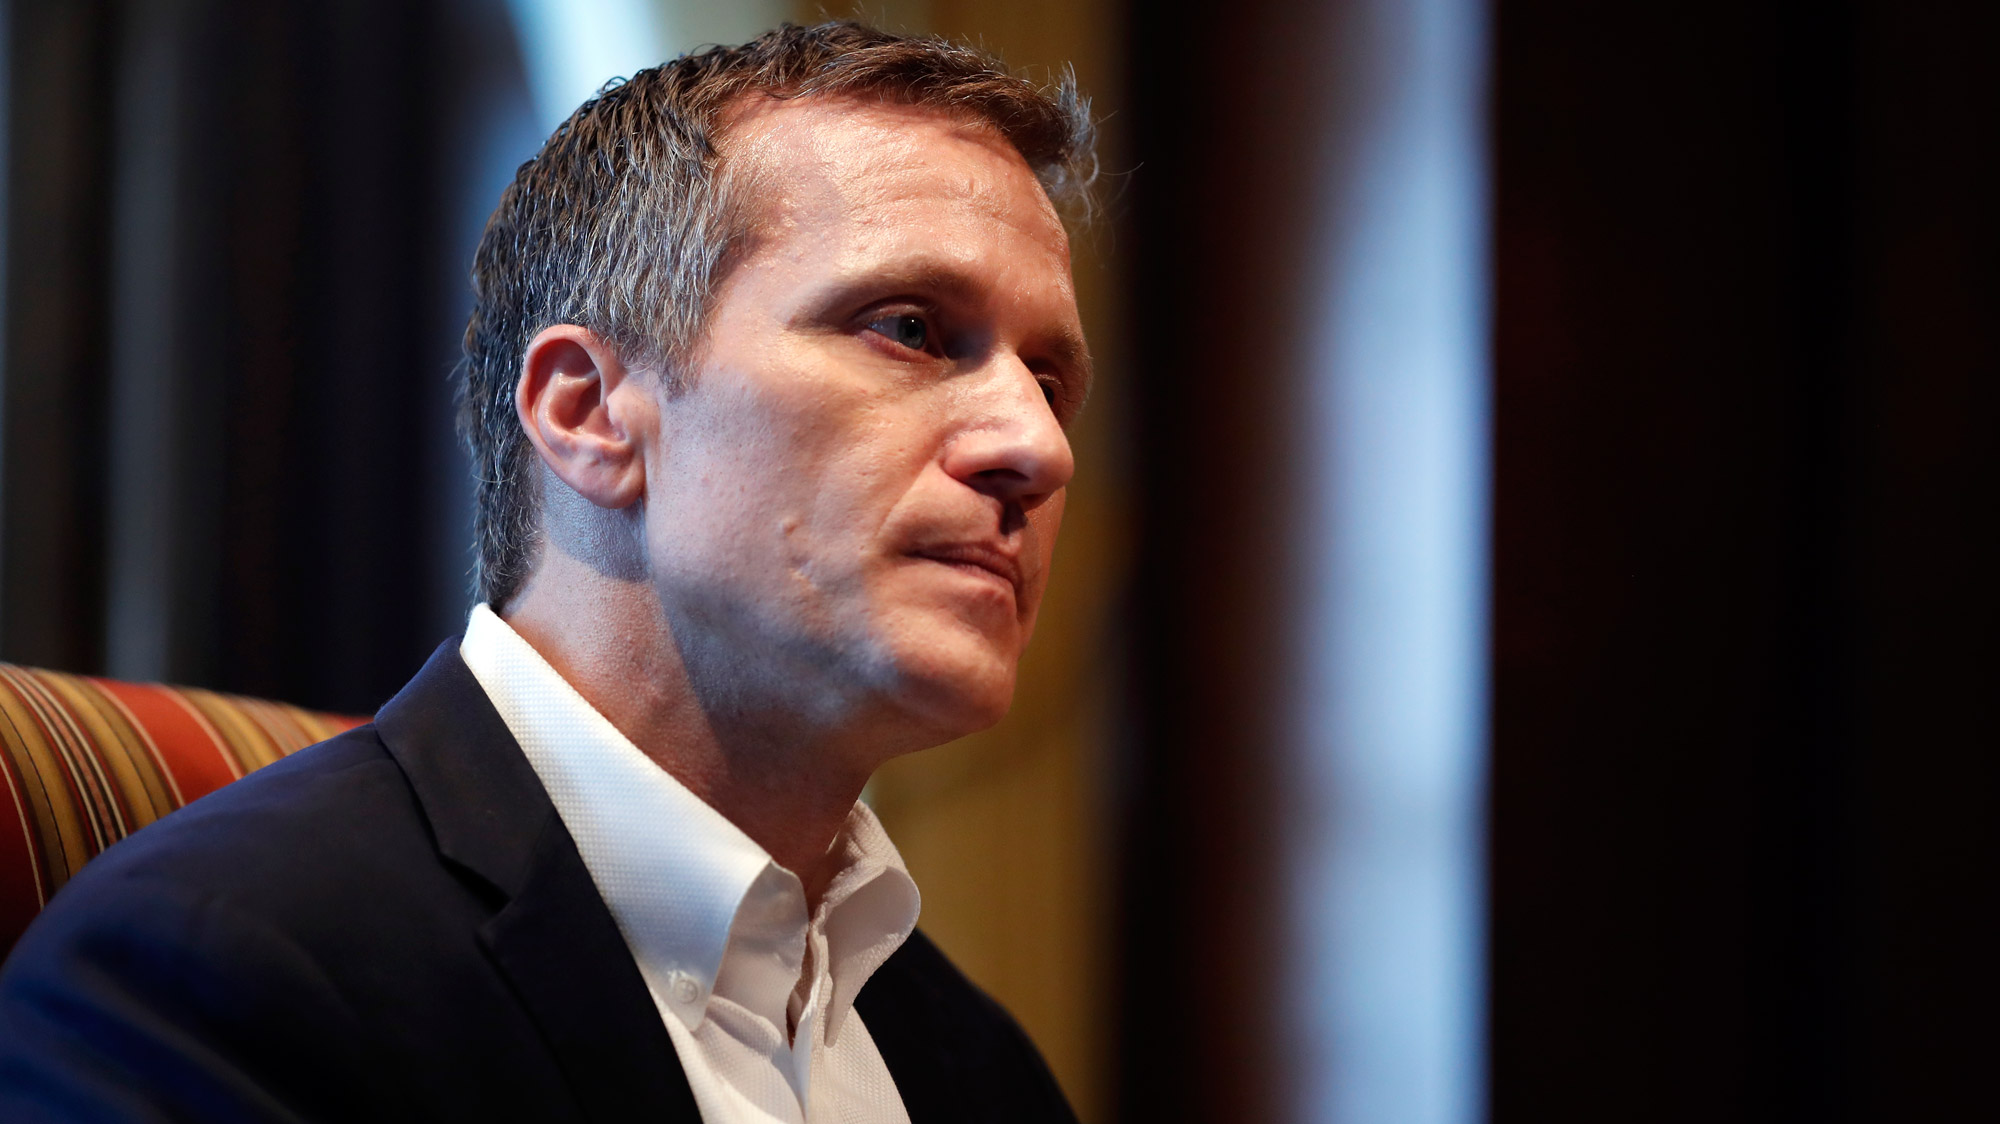 Lawmakers could impeach Gov. Greitens regardless of guilt